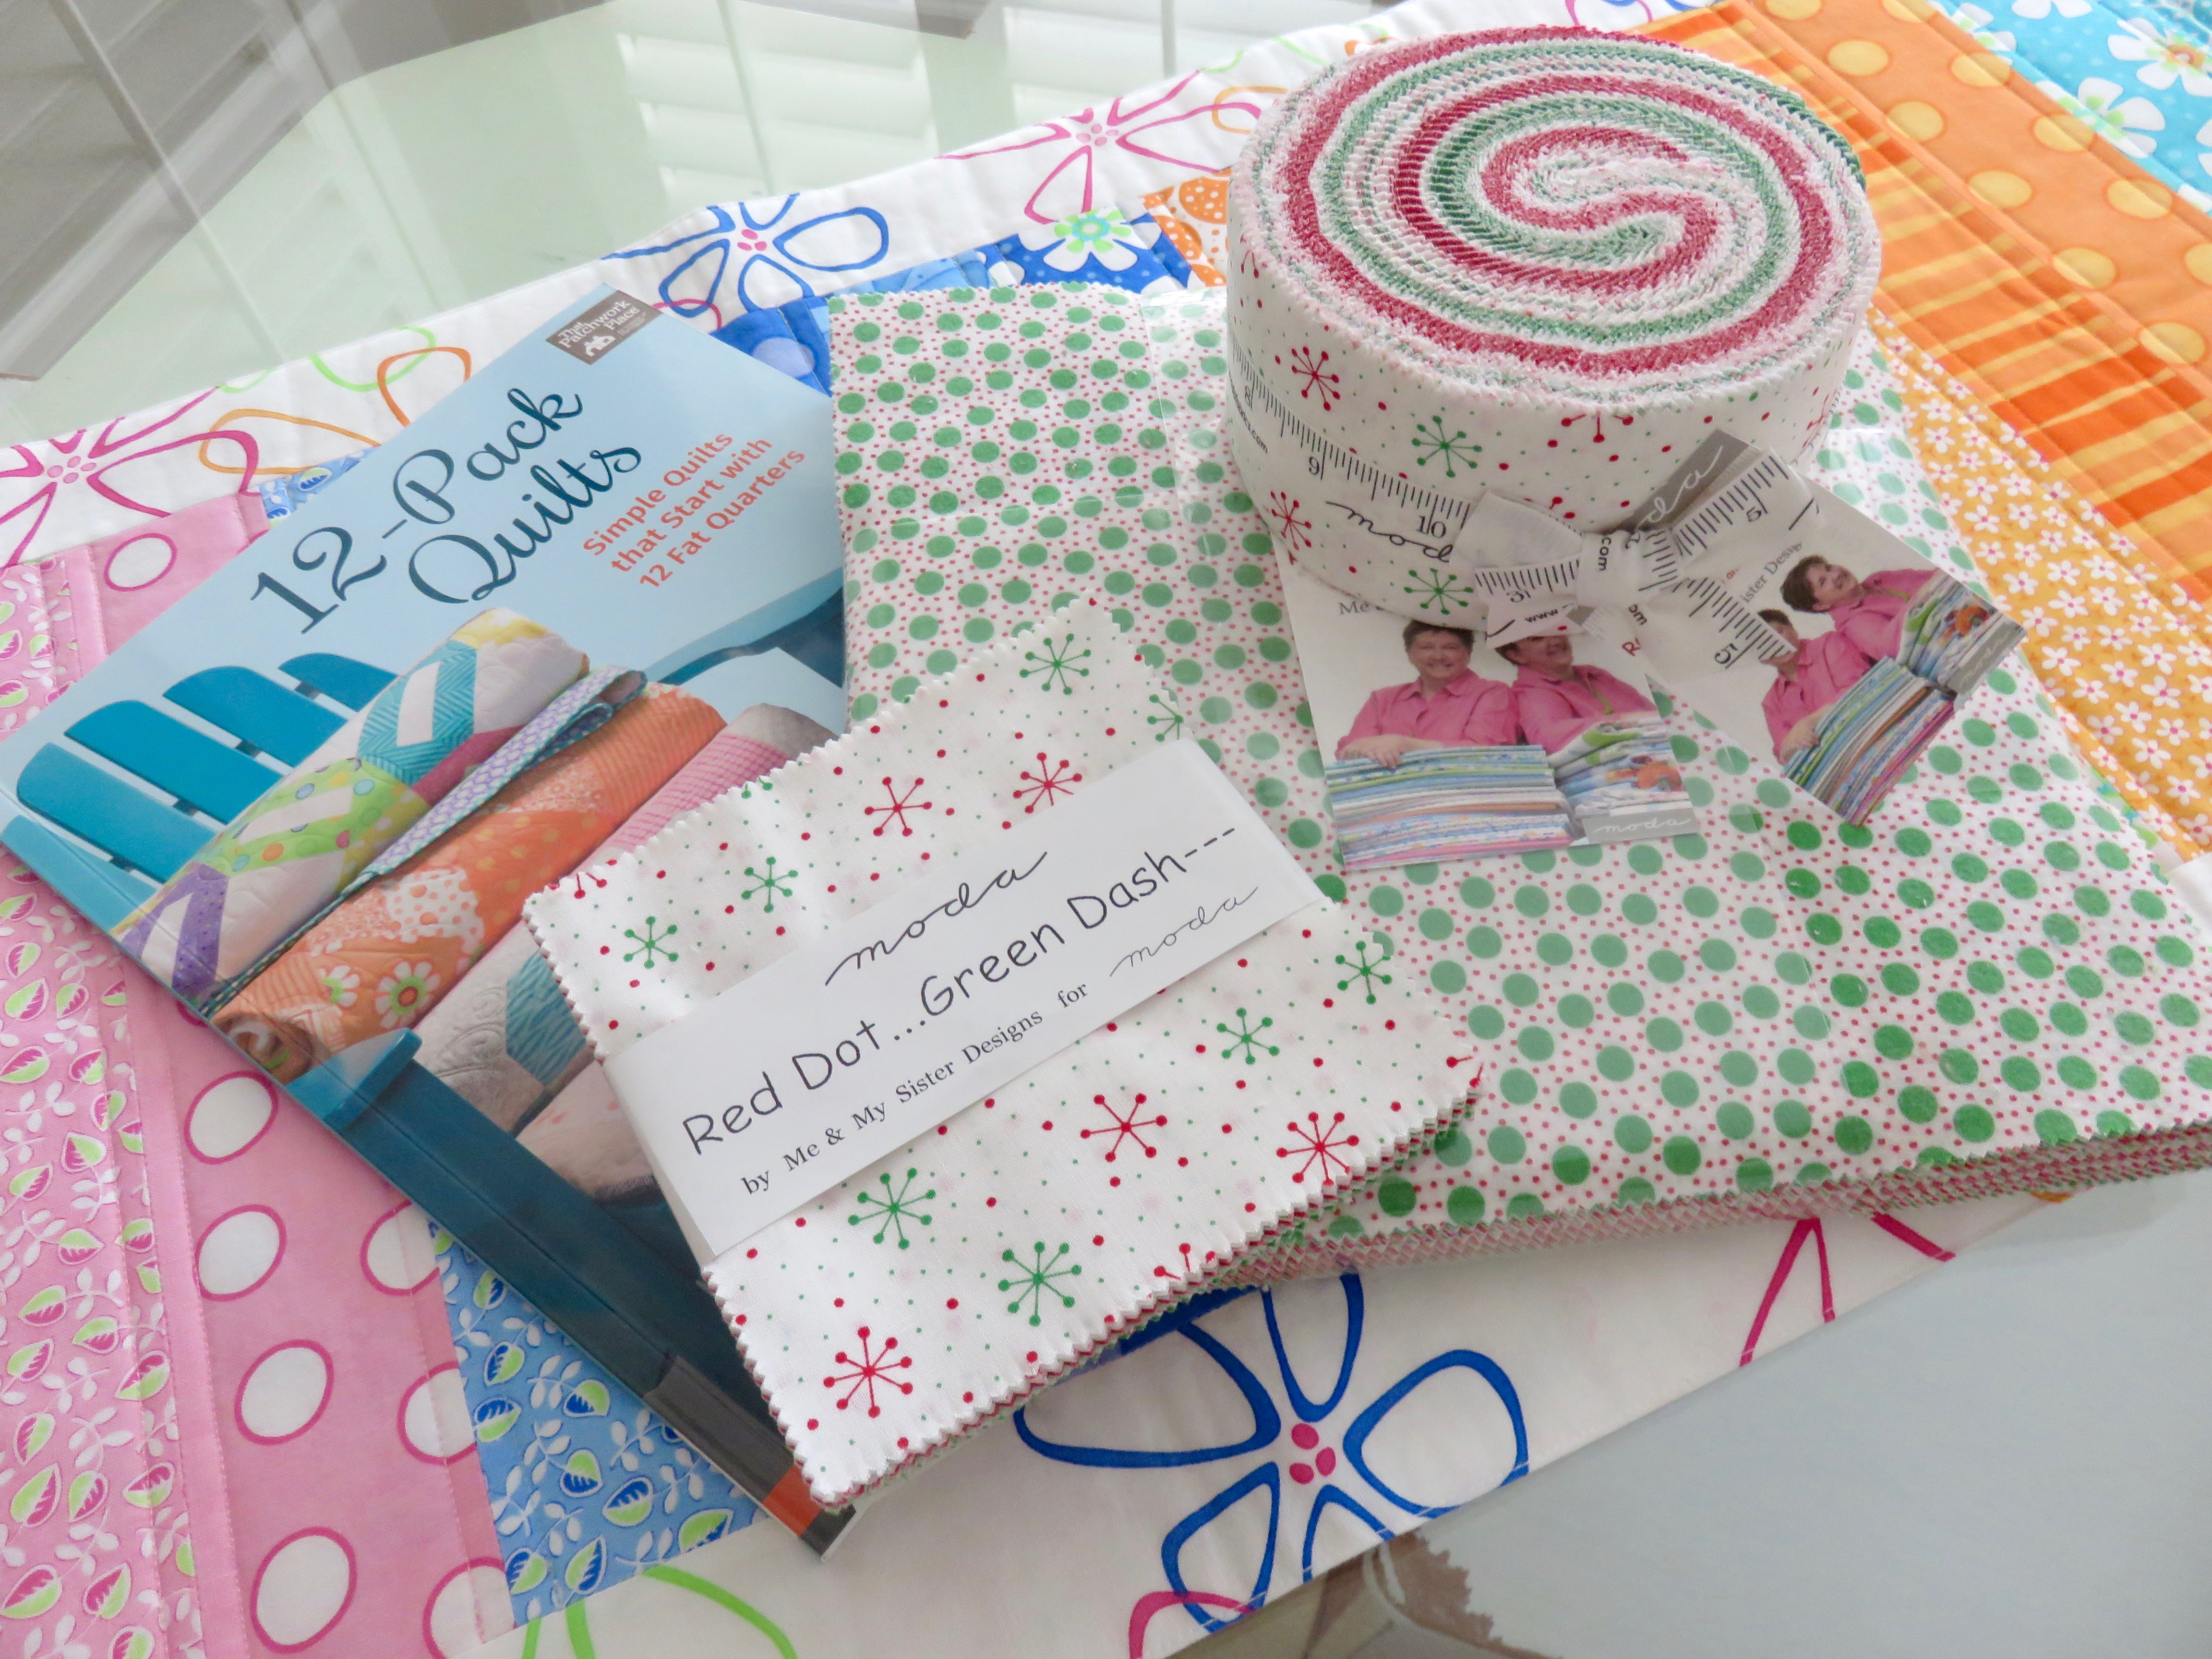 Quilten Met Layer Cakes Jelly Rolls En Charm Packs.Me And My Sister Designs